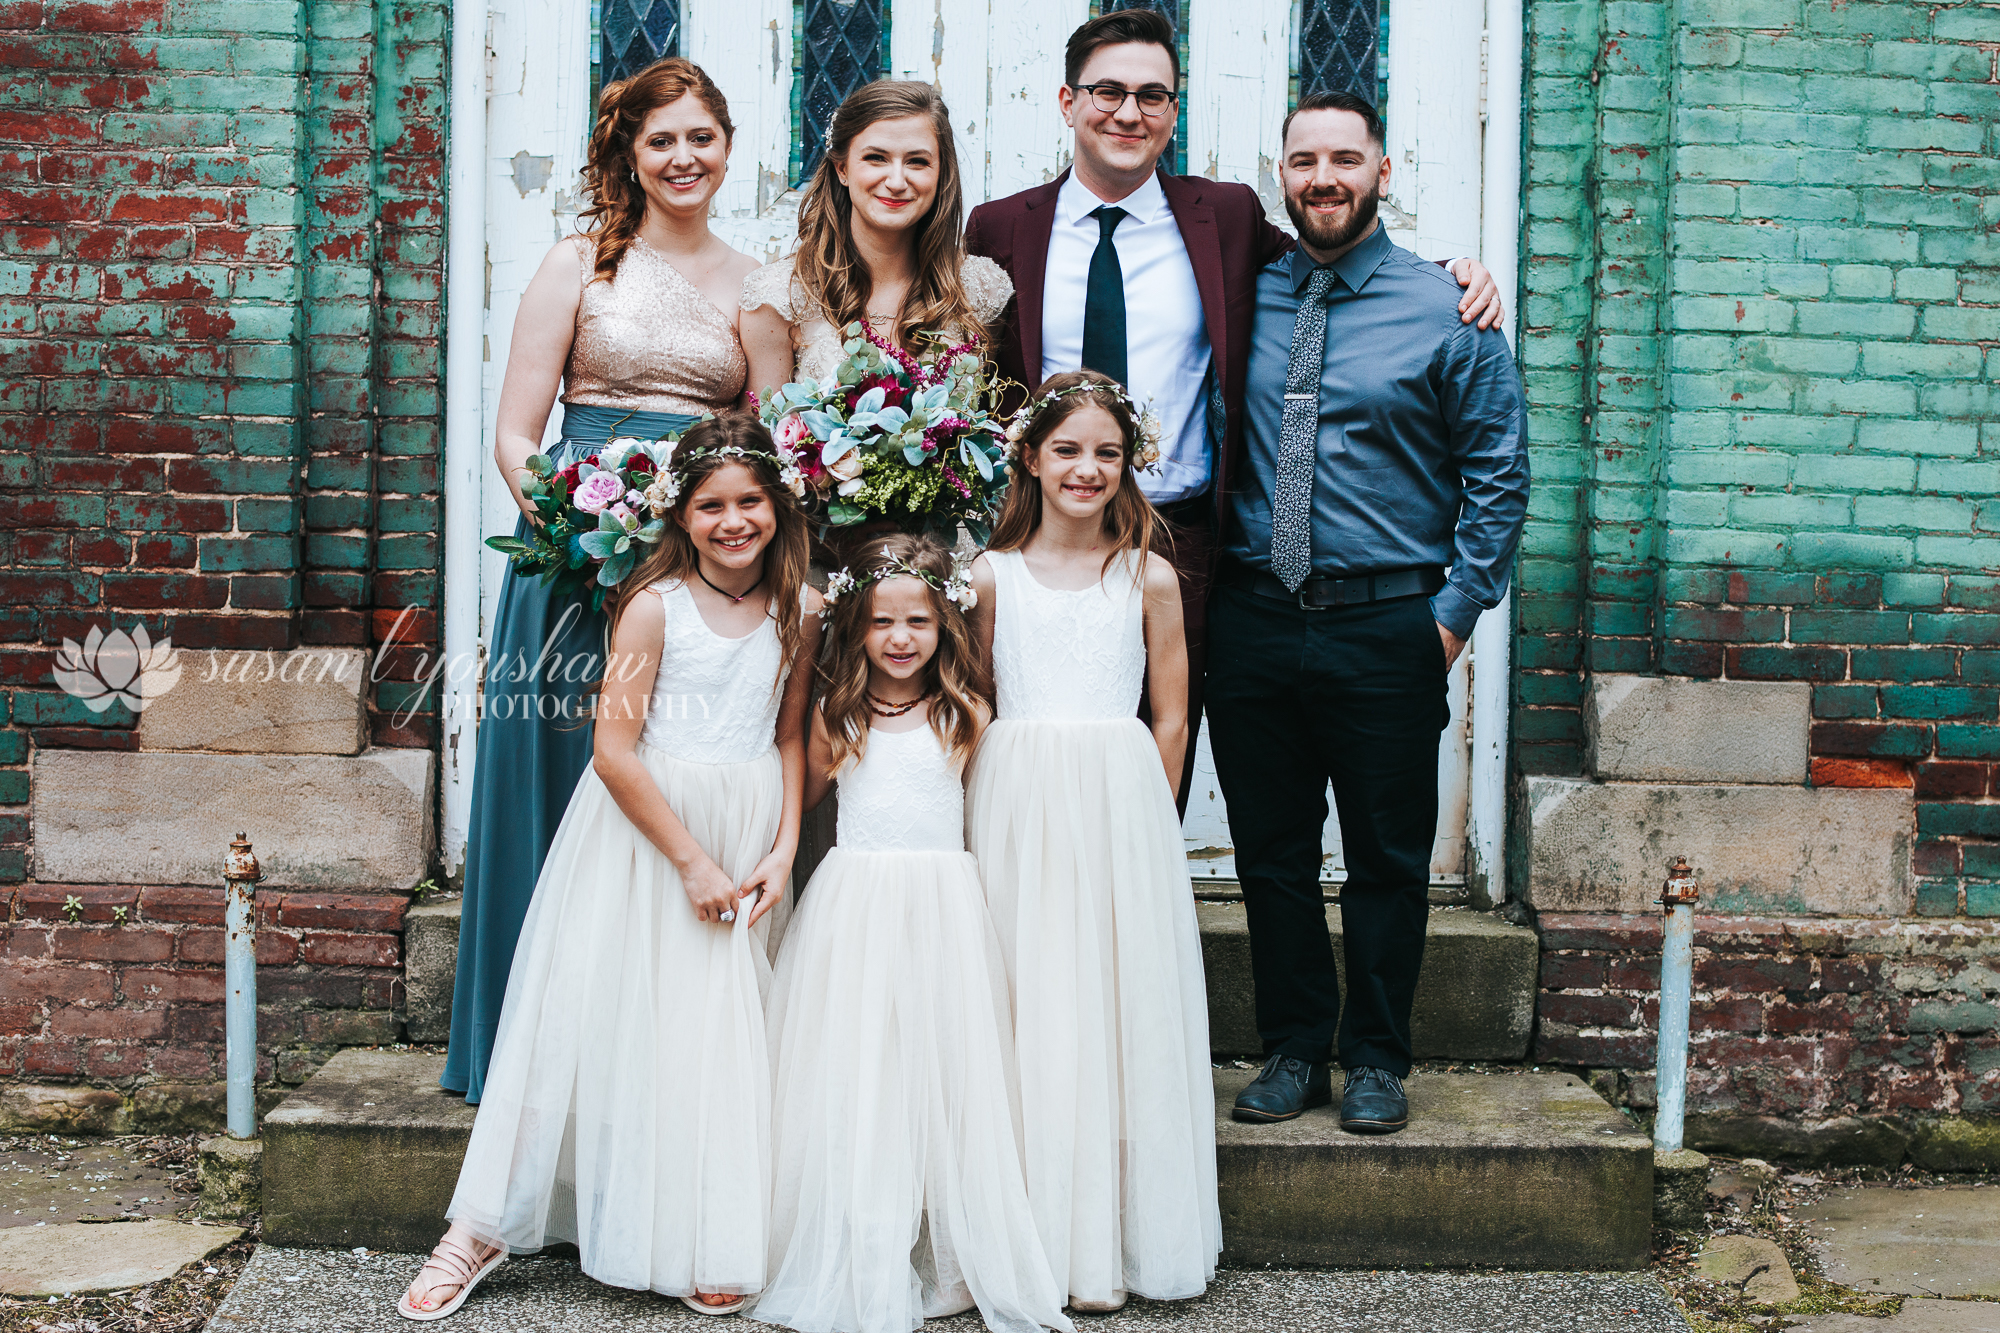 Chynna and John Wedding 05-18-2019 SLY Photography-36.jpg